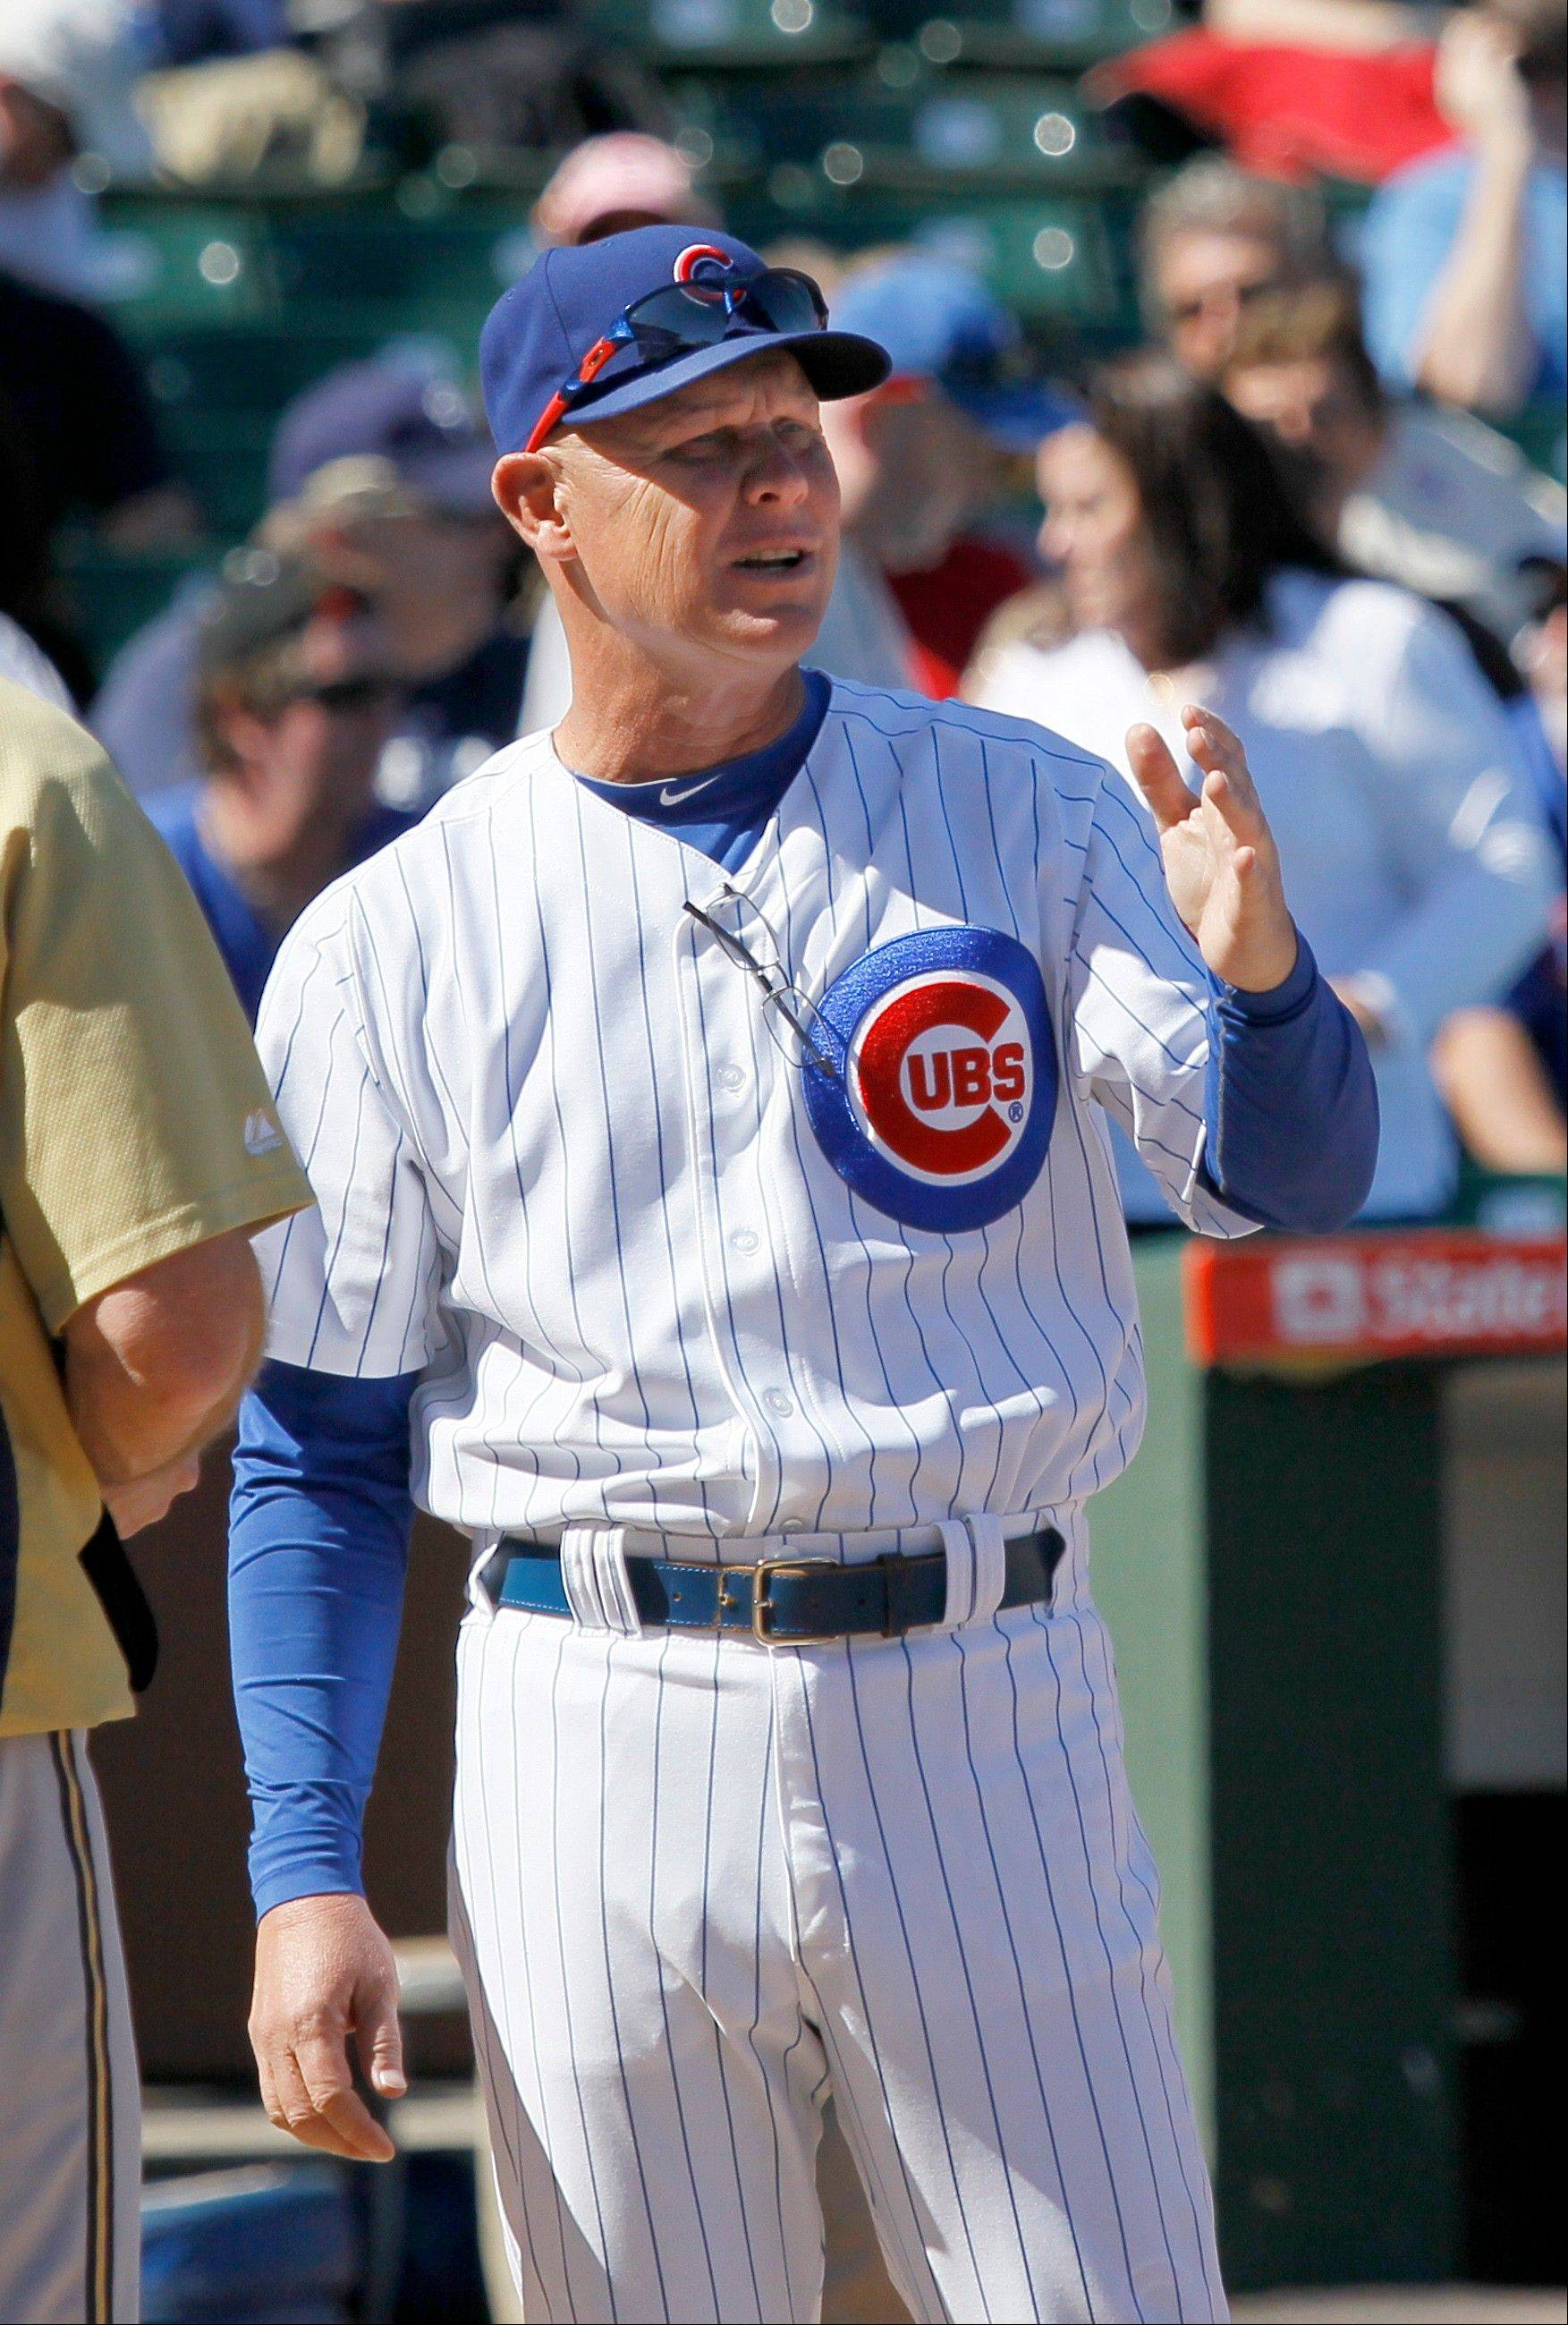 With the season concluding Wednesday night in San Diego, Cubs manager Mike Quade continues to go about his business until the team finds a new general manager.